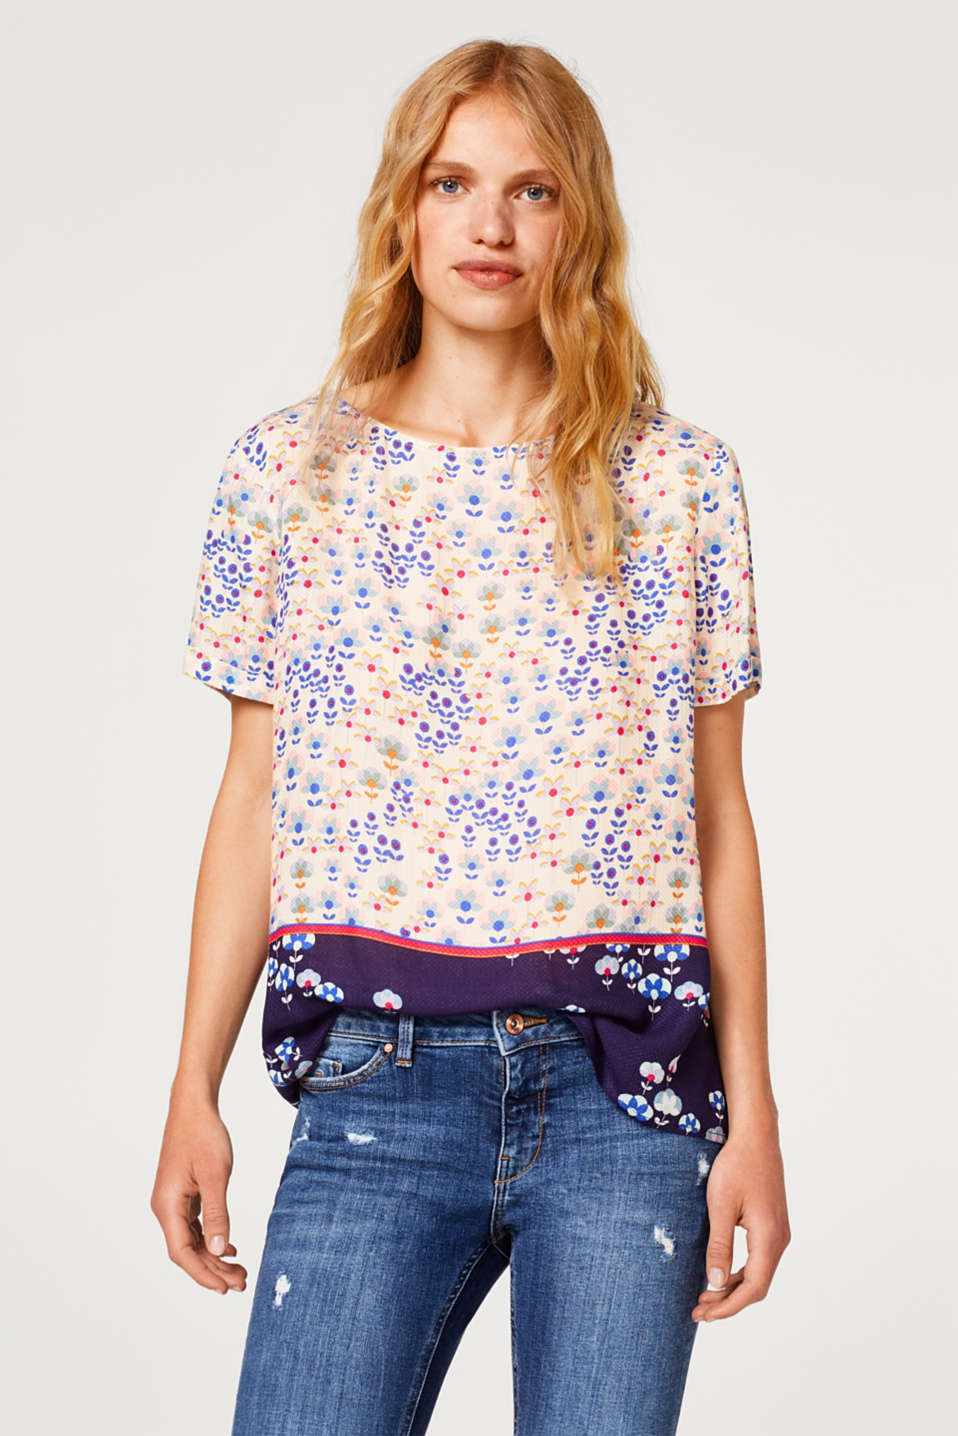 Esprit - Blouse top in a mix of floral prints